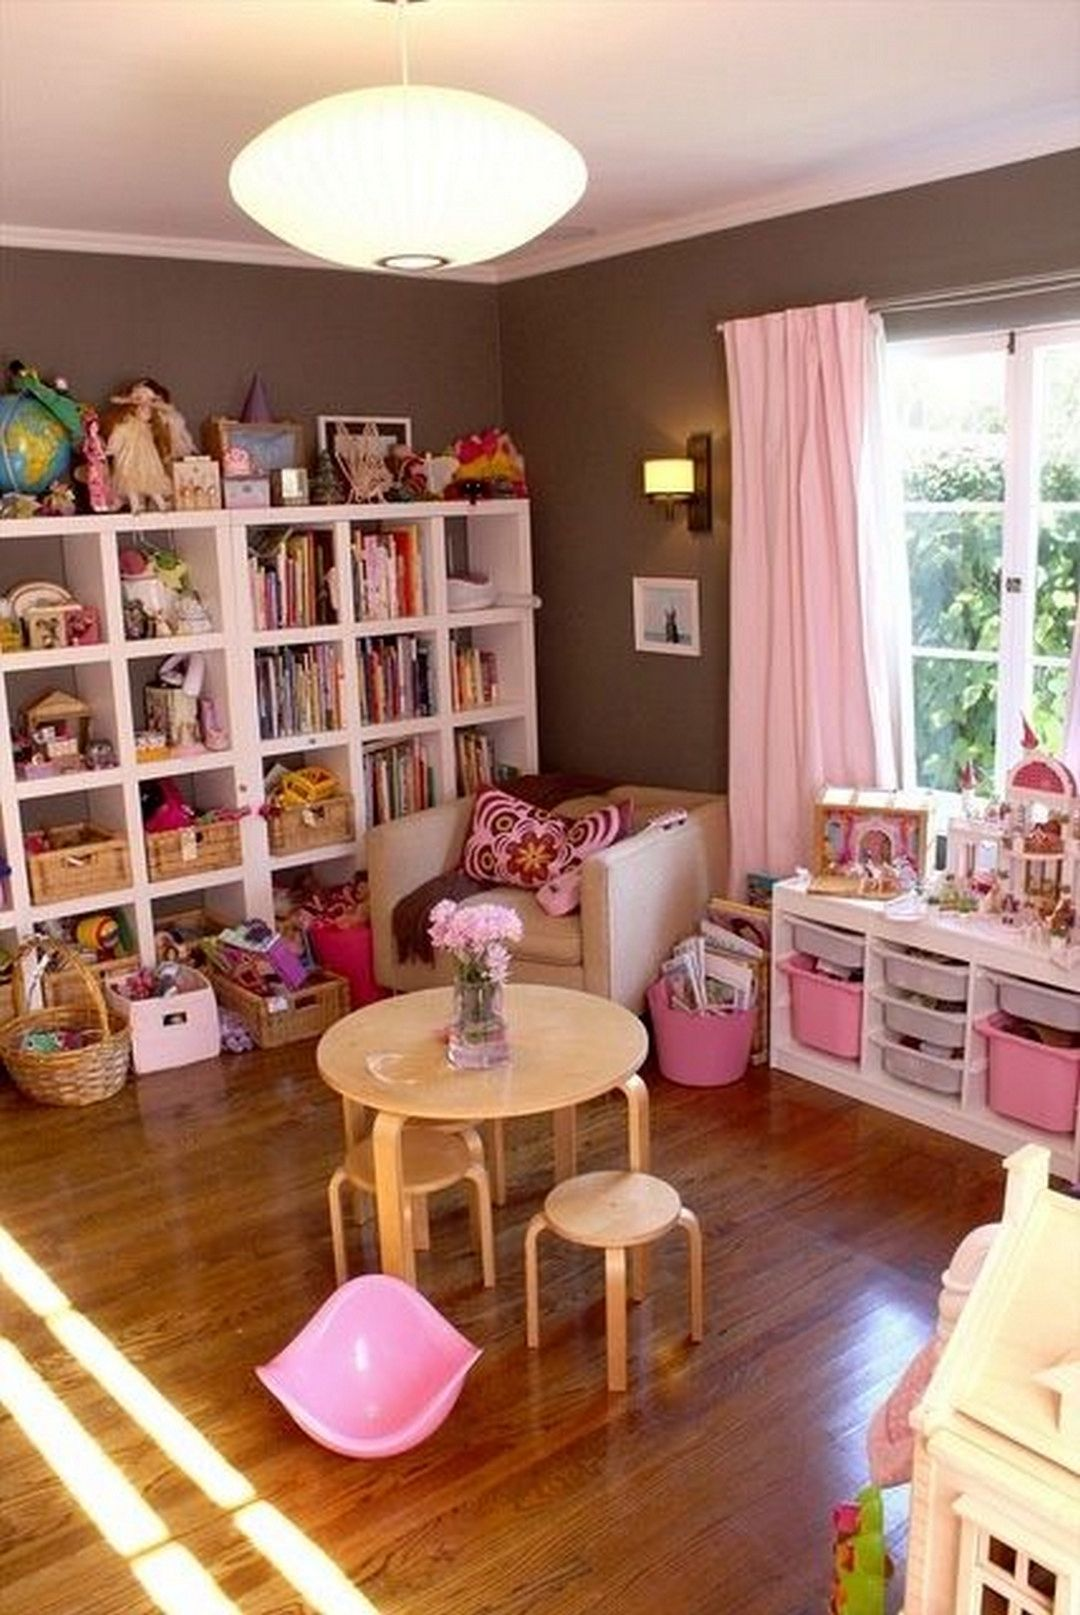 10 Creative Toy Storage Tips For Your Kids | House Stuff | Playroom